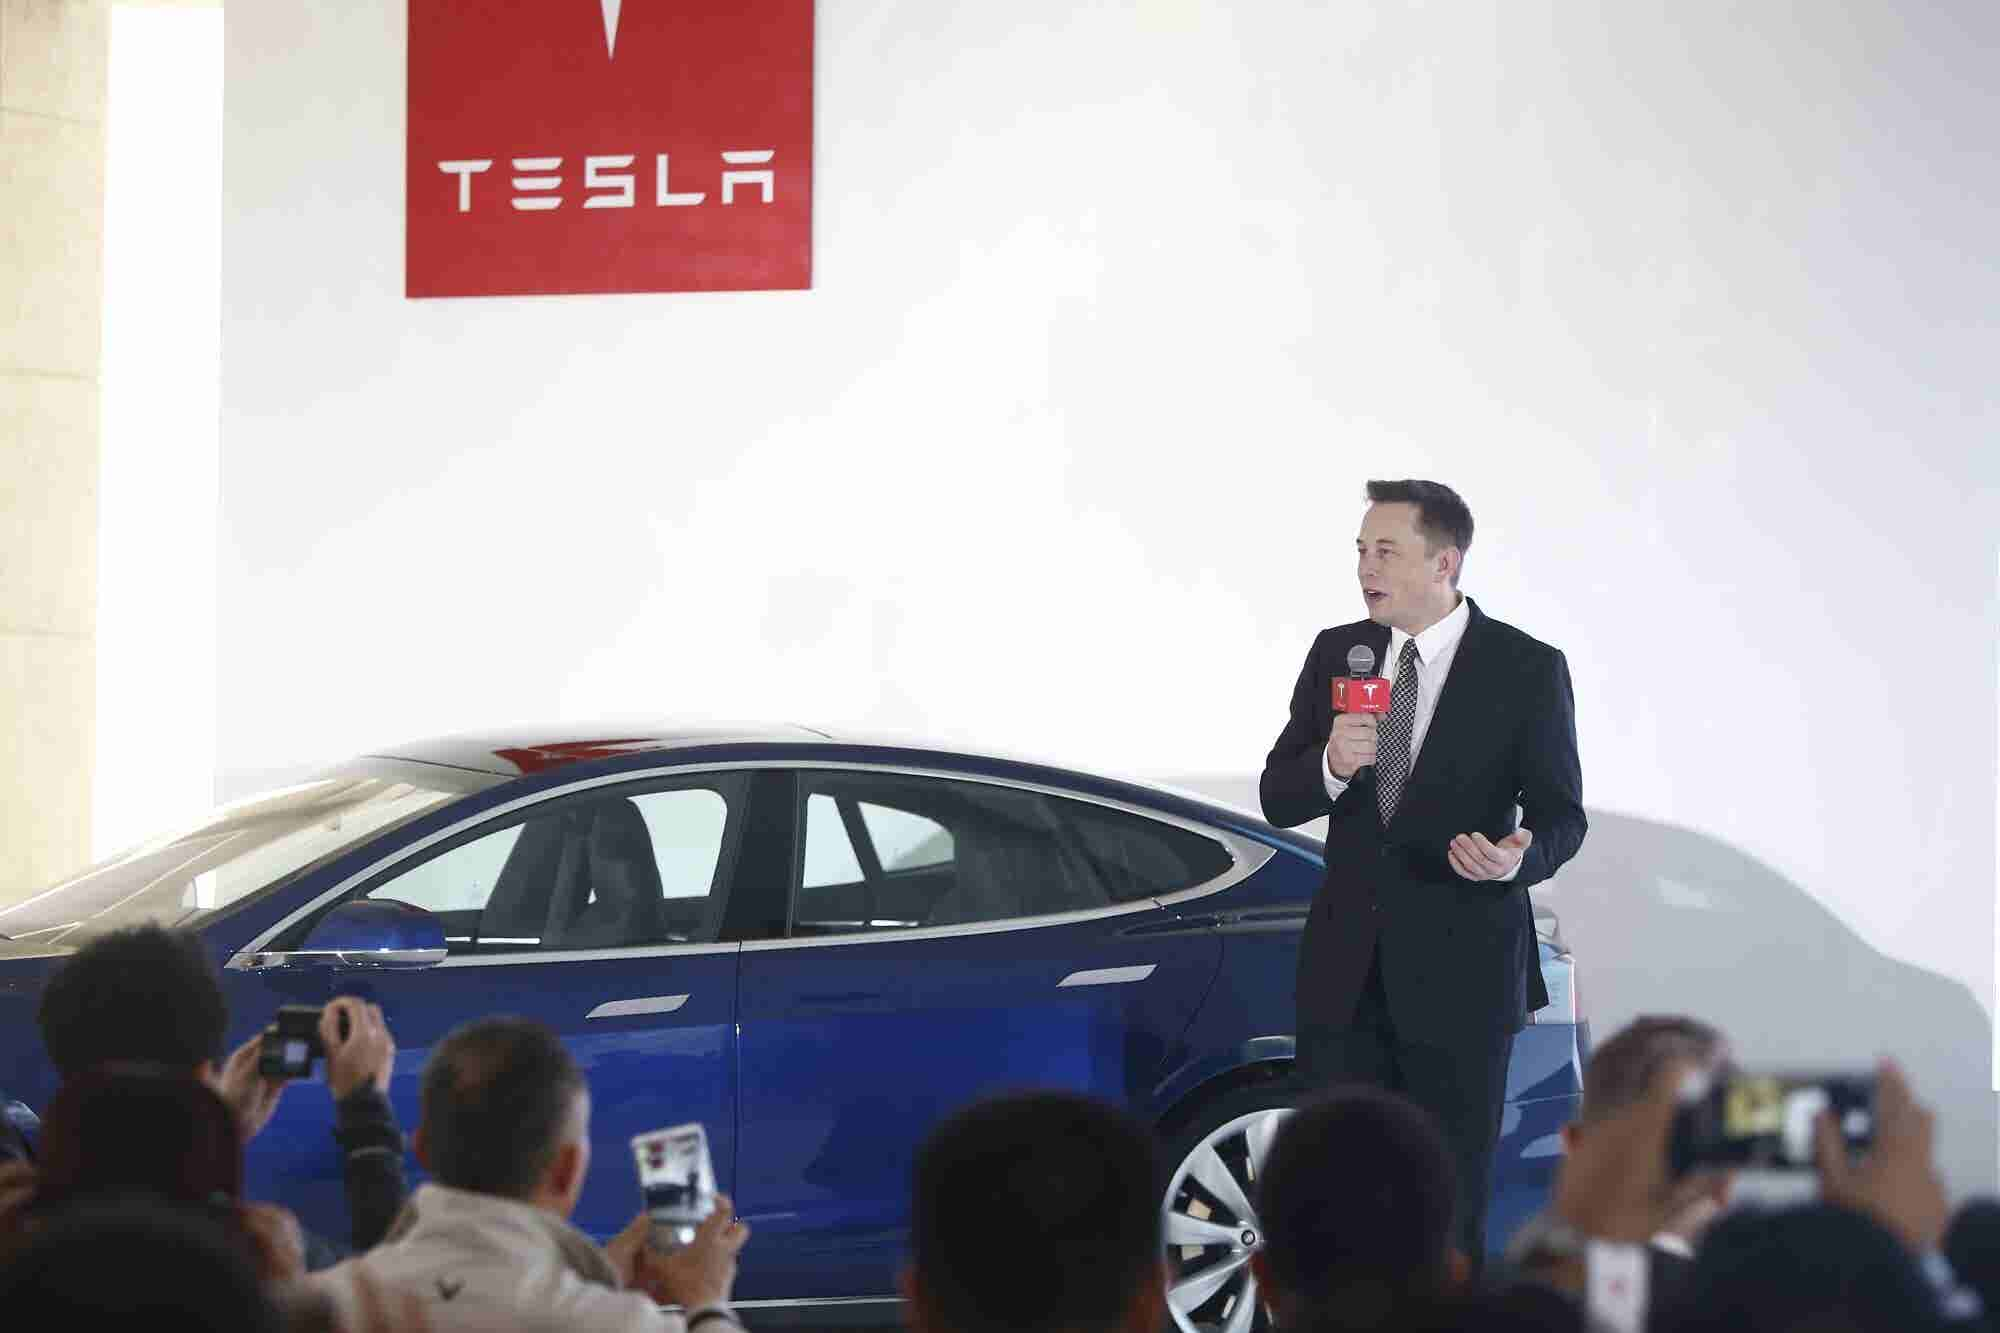 Tesla Announces Plan to Cut 7 Percent of Its Workforce, Leading to Stock Plummet